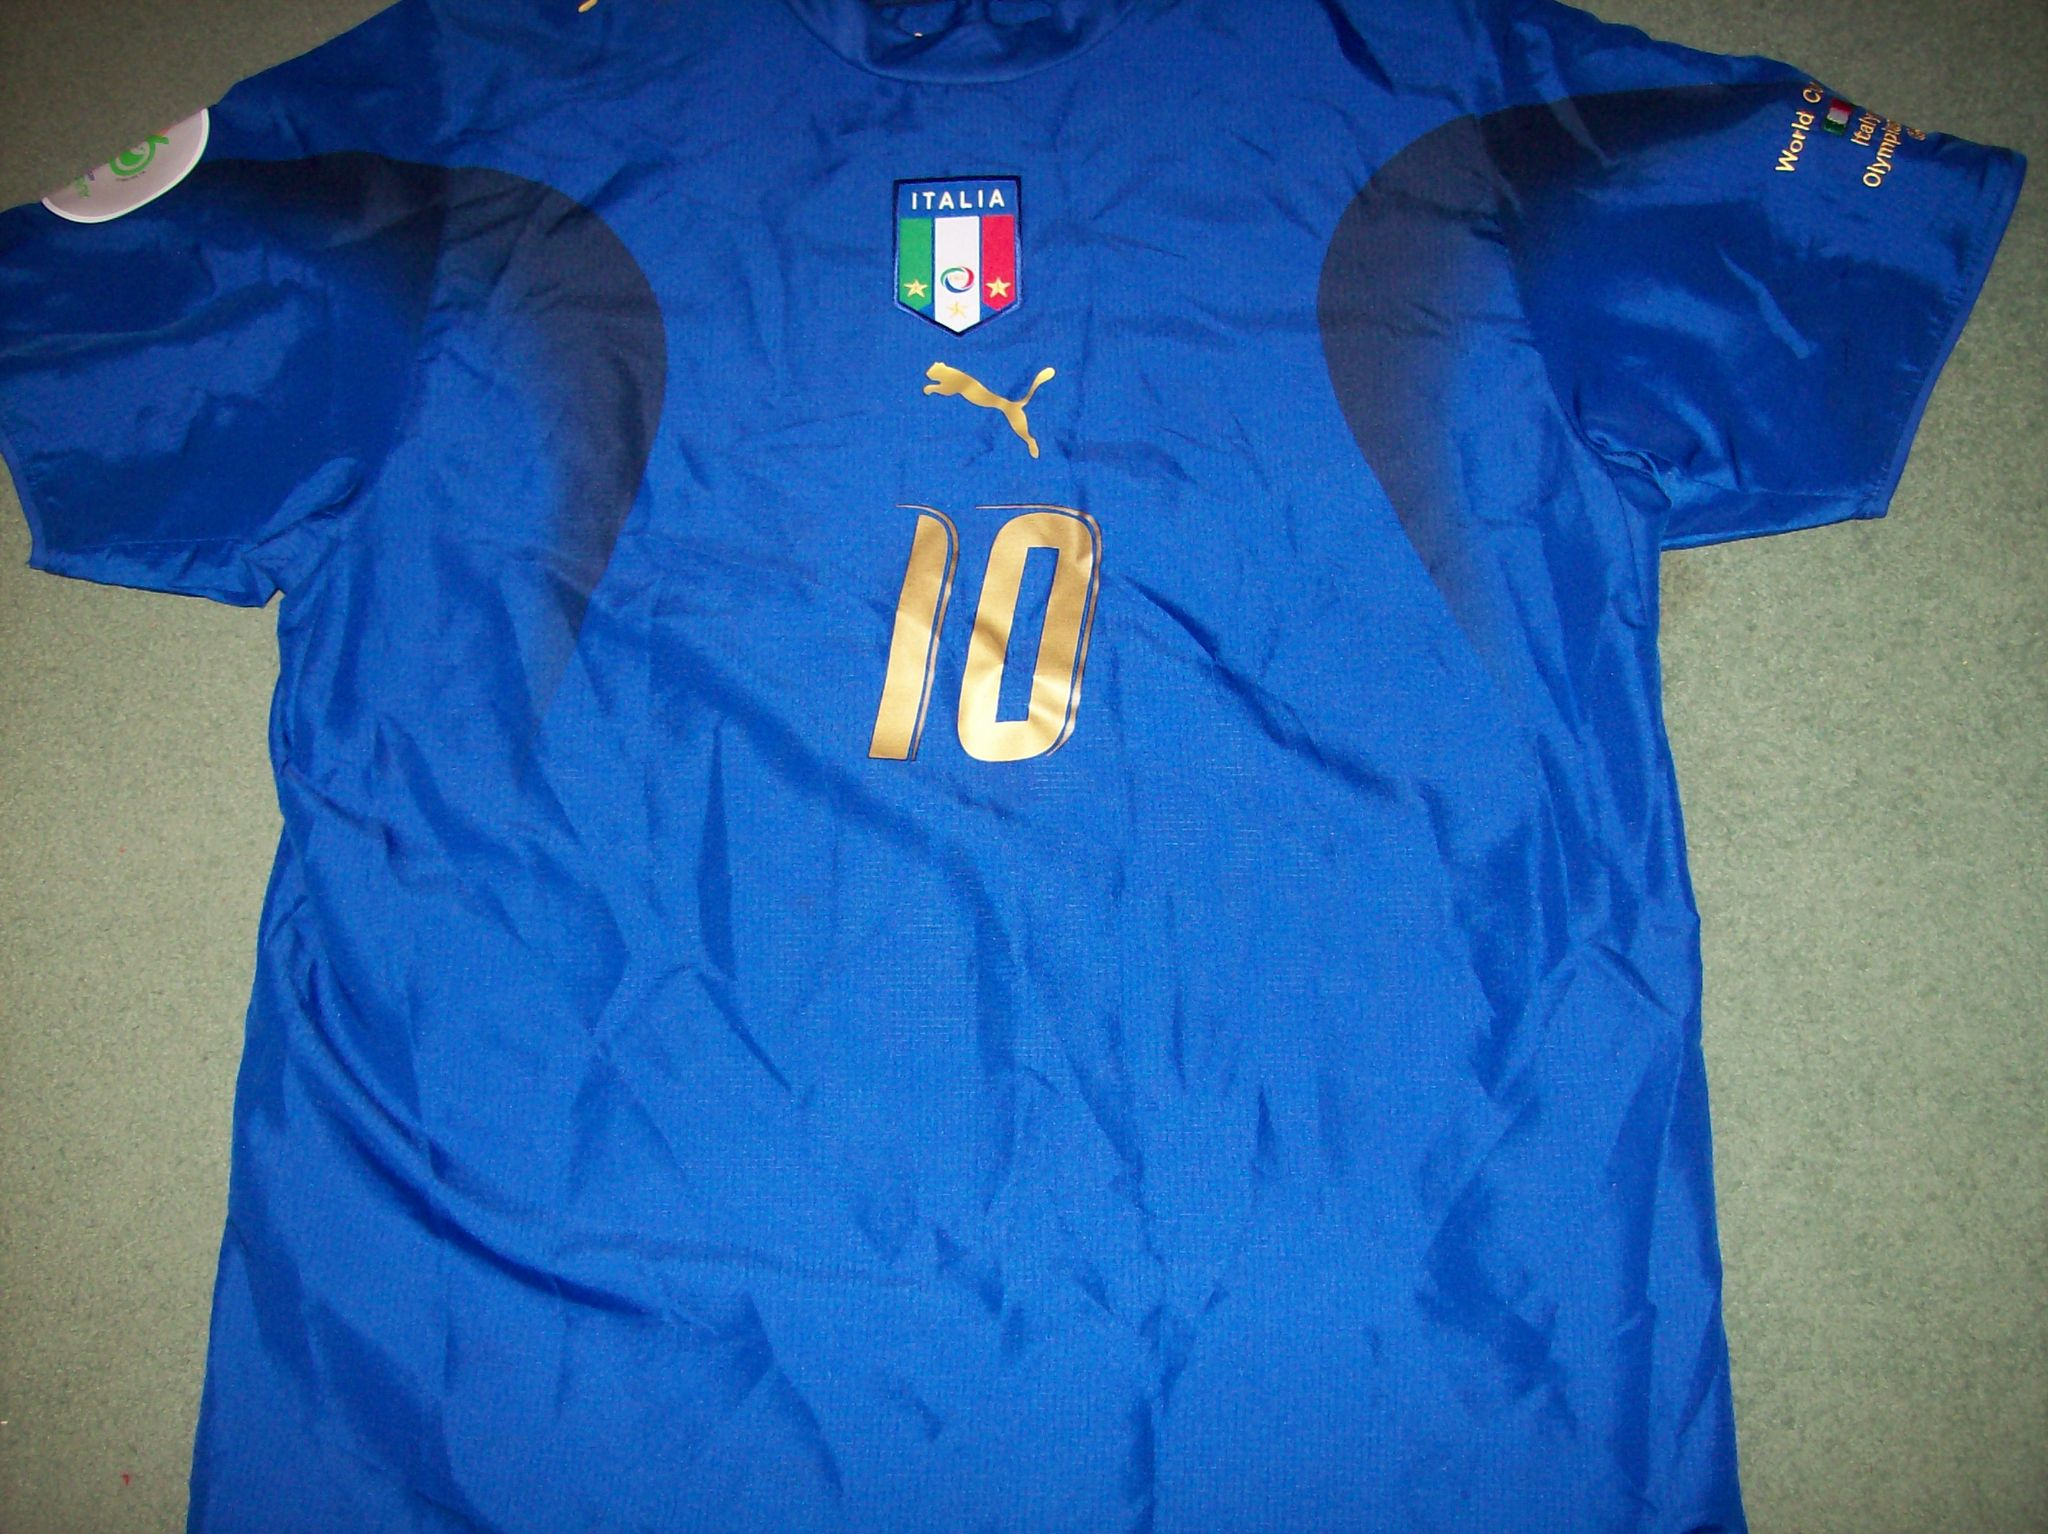 2b3c08de934 Global Classic Football Shirts   2006 Italy Totti World Cup   Old Vintage  Soccer Jersey